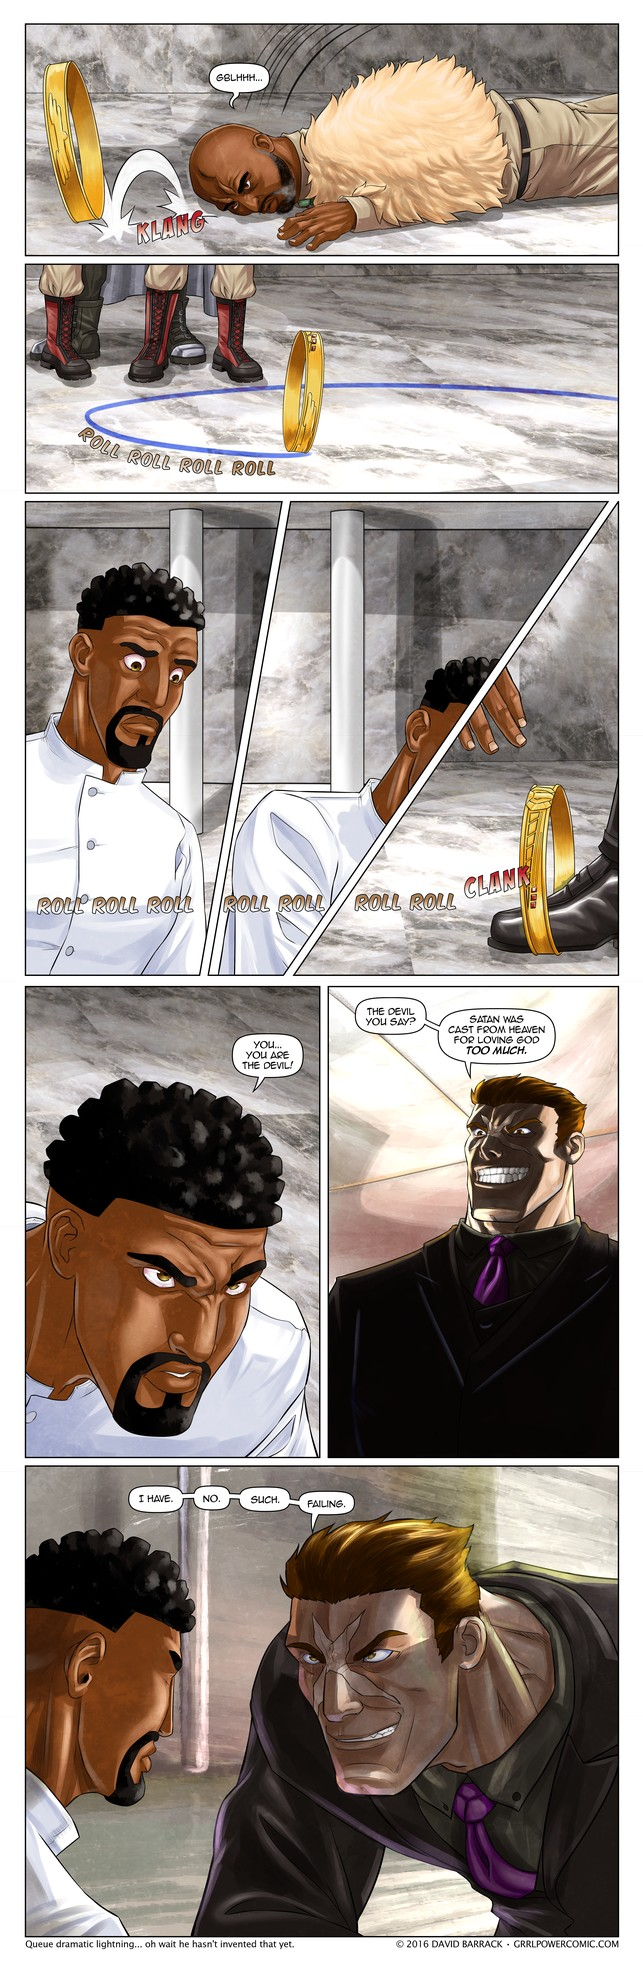 Grrl Power #391 – Melodramatic fanatic